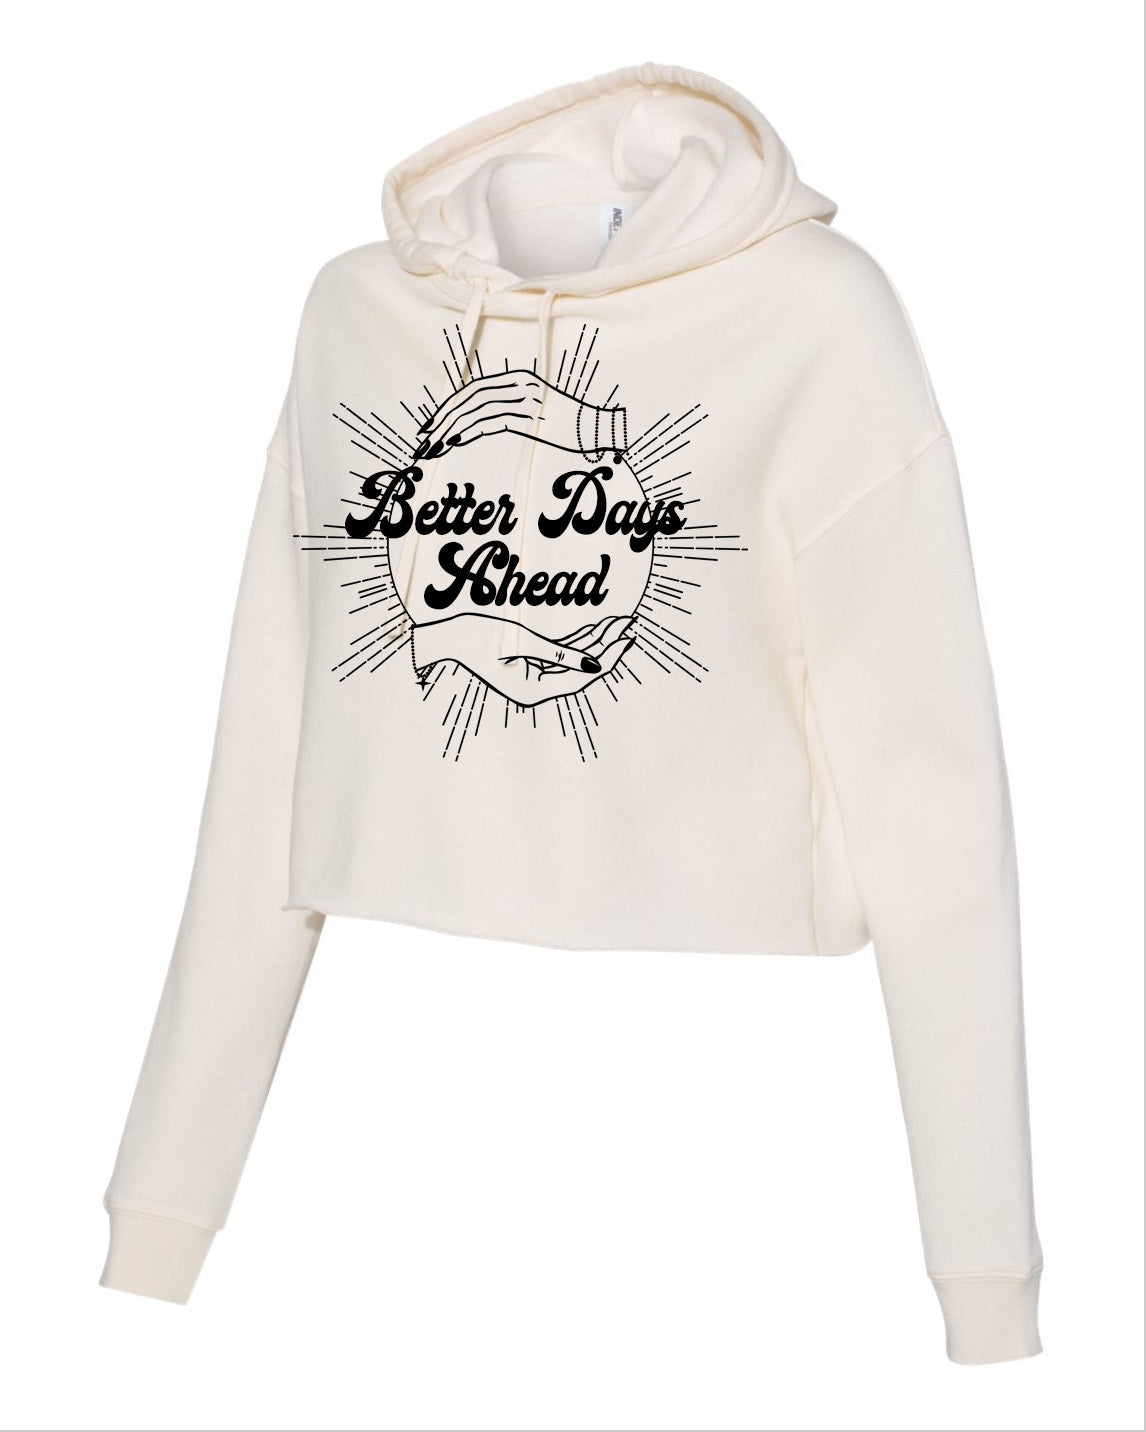 Better Days Ahead Cropped Hooded Sweatshirt